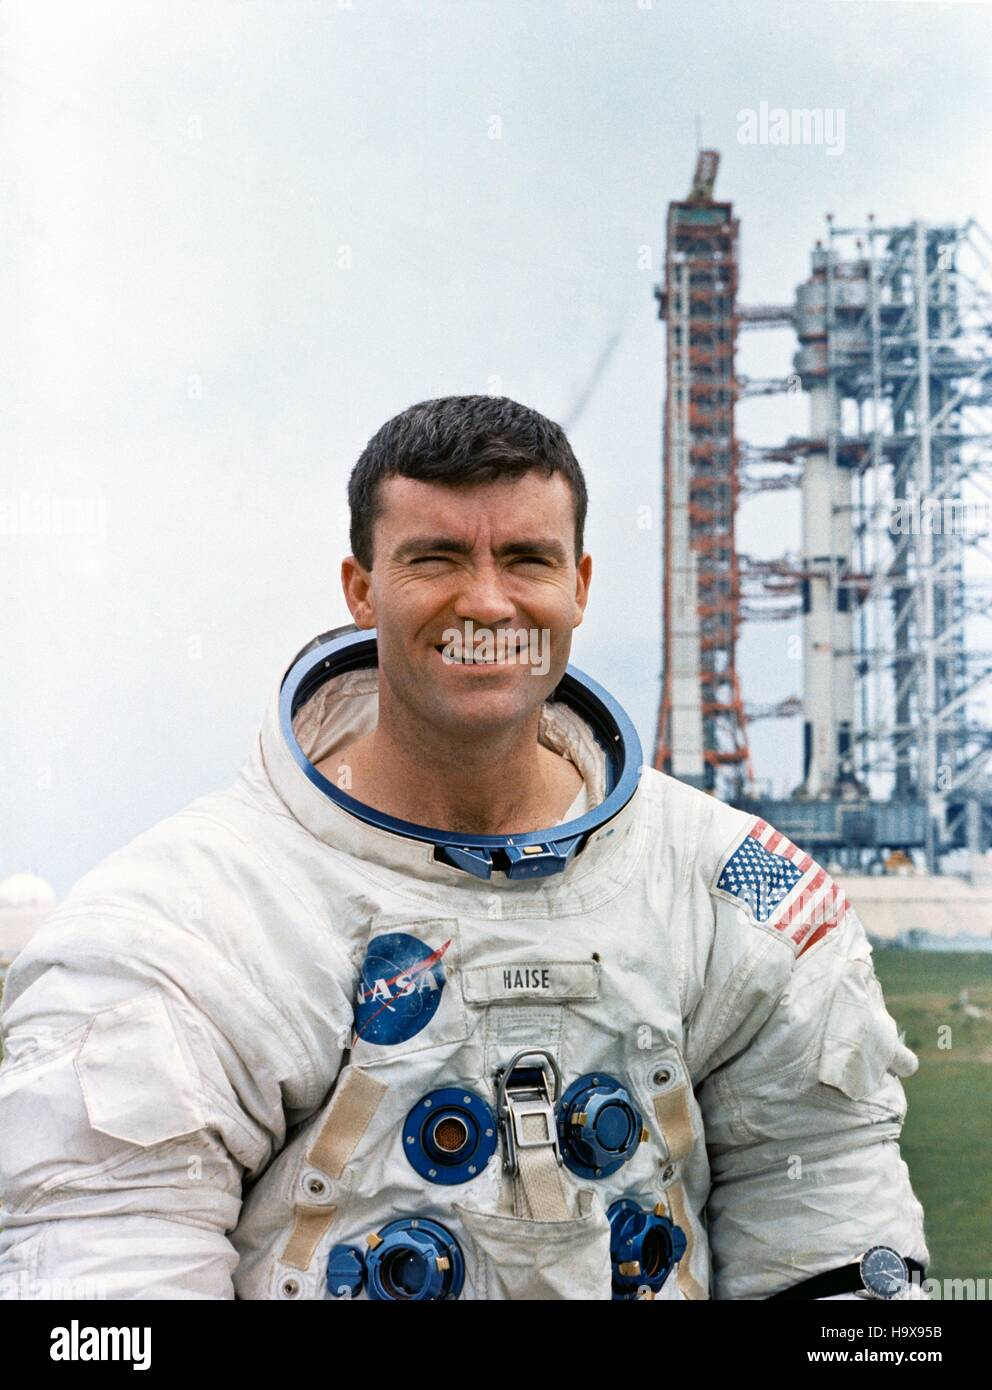 NASA Apollo 13 lunar landing mission astronaut Fred Haise poses dressed in a spacesuit in front of the Saturn V - Stock Image